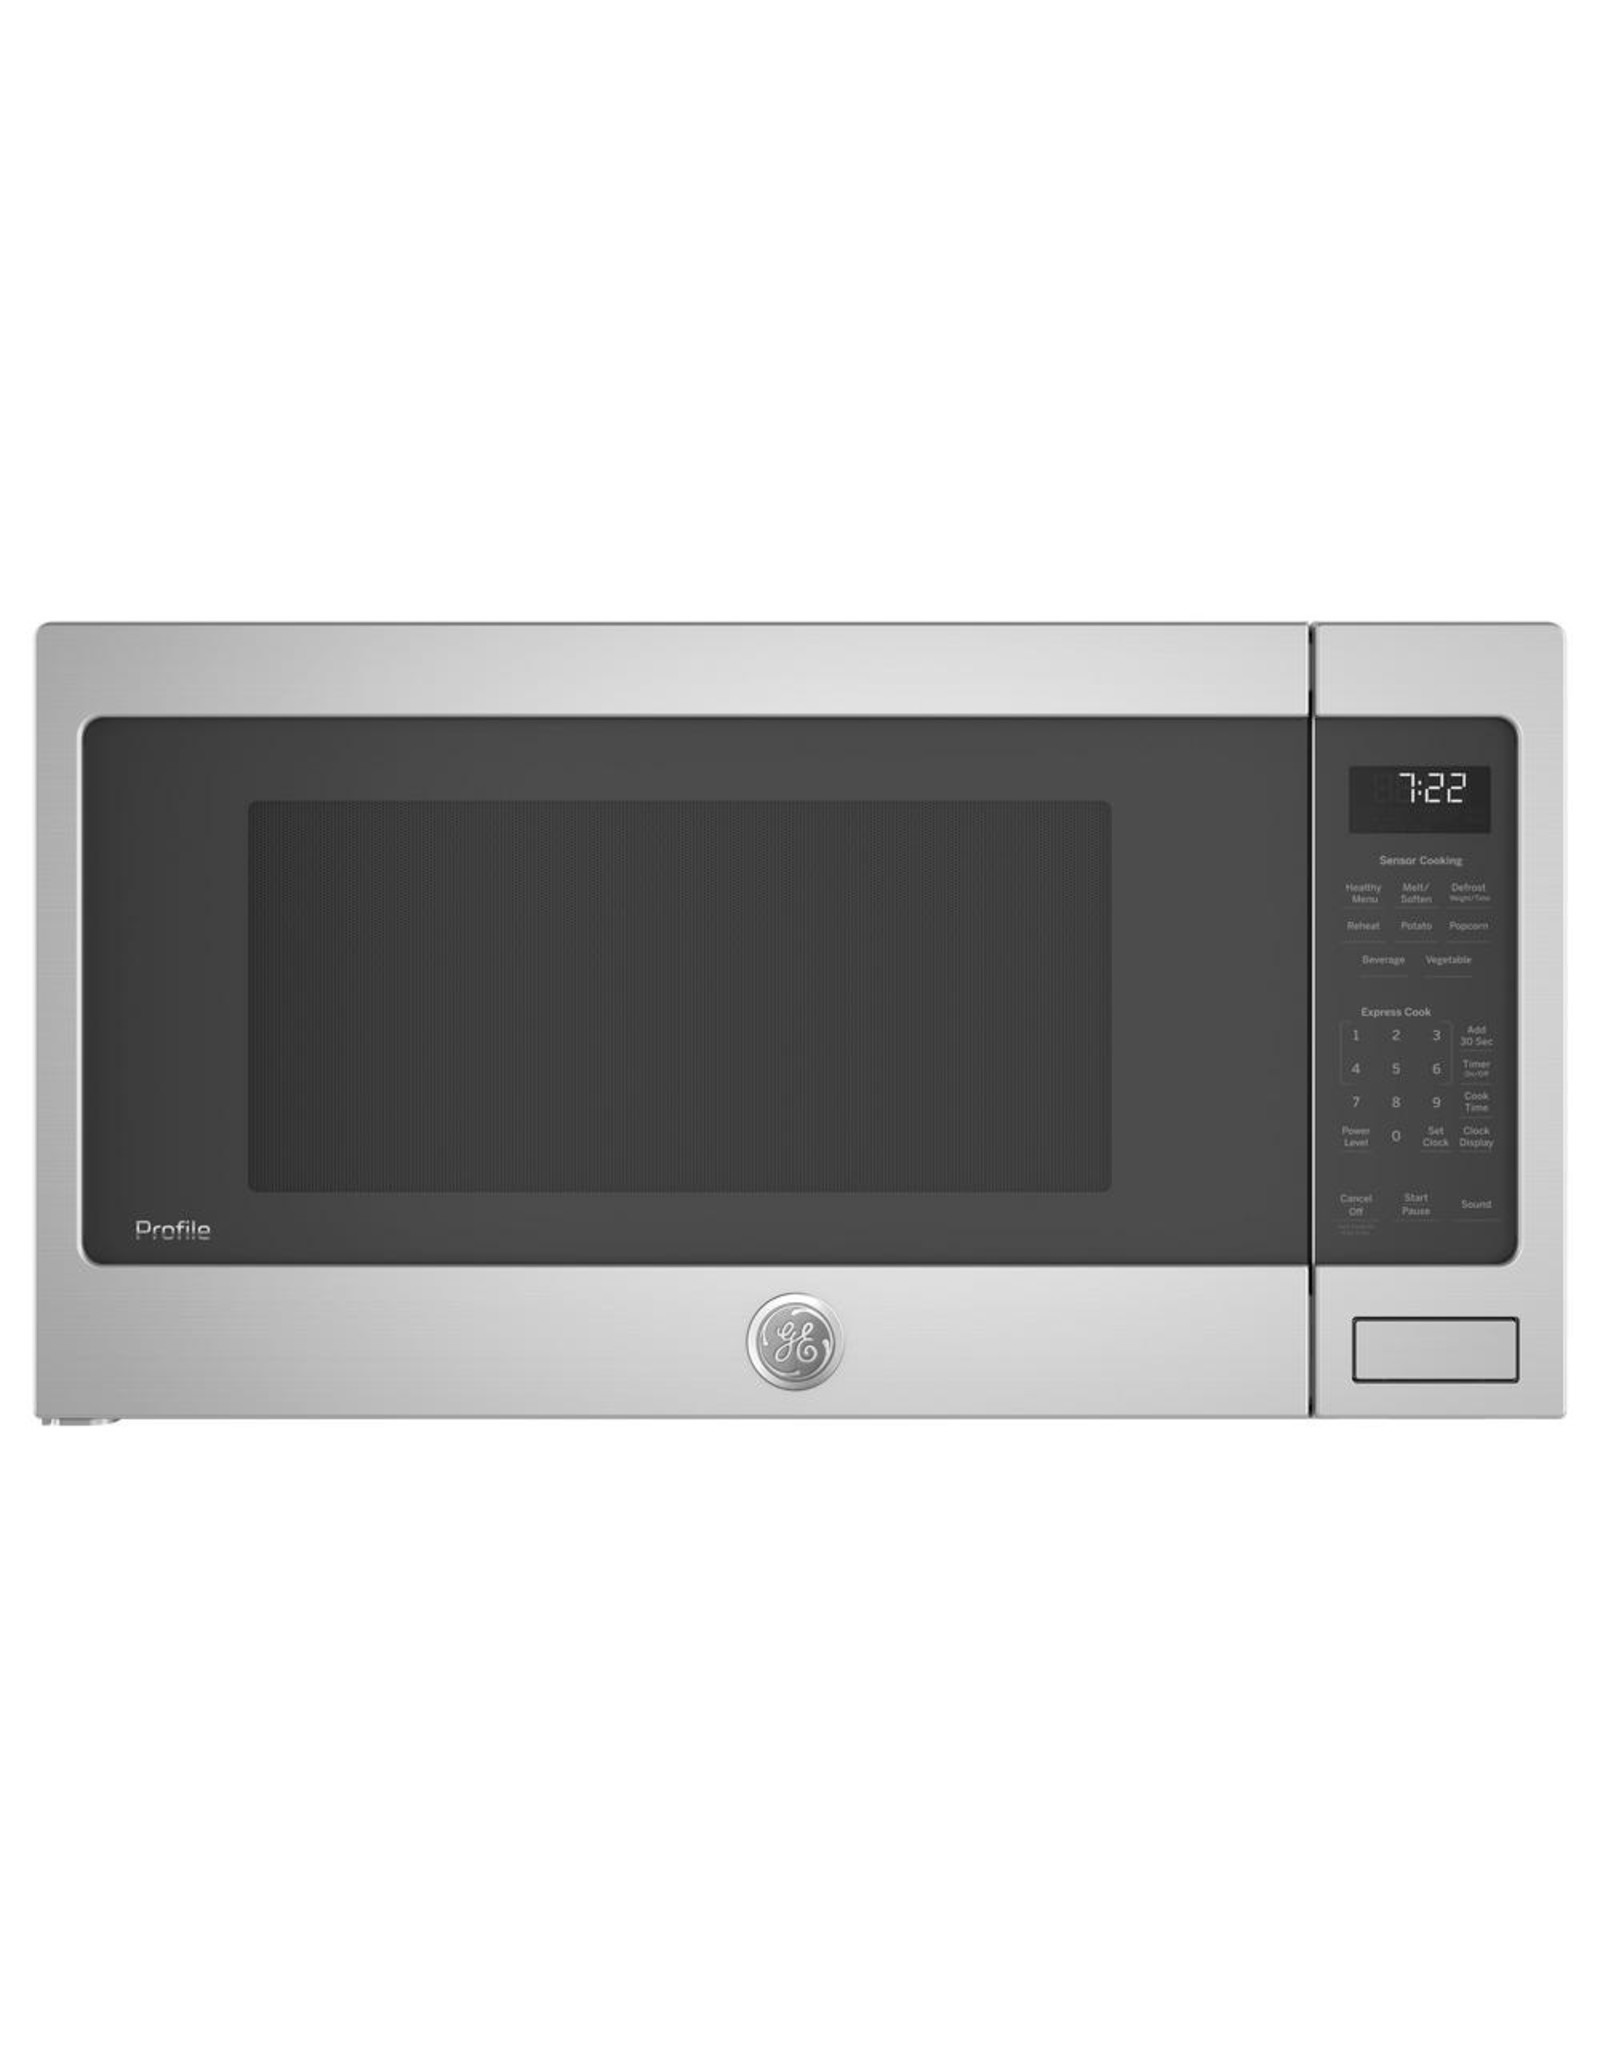 GE PROFILE PES7227SLSS  GE Profile 2.2 cu. ft. Countertop Microwave in Stainless Steel with Sensor Cooking